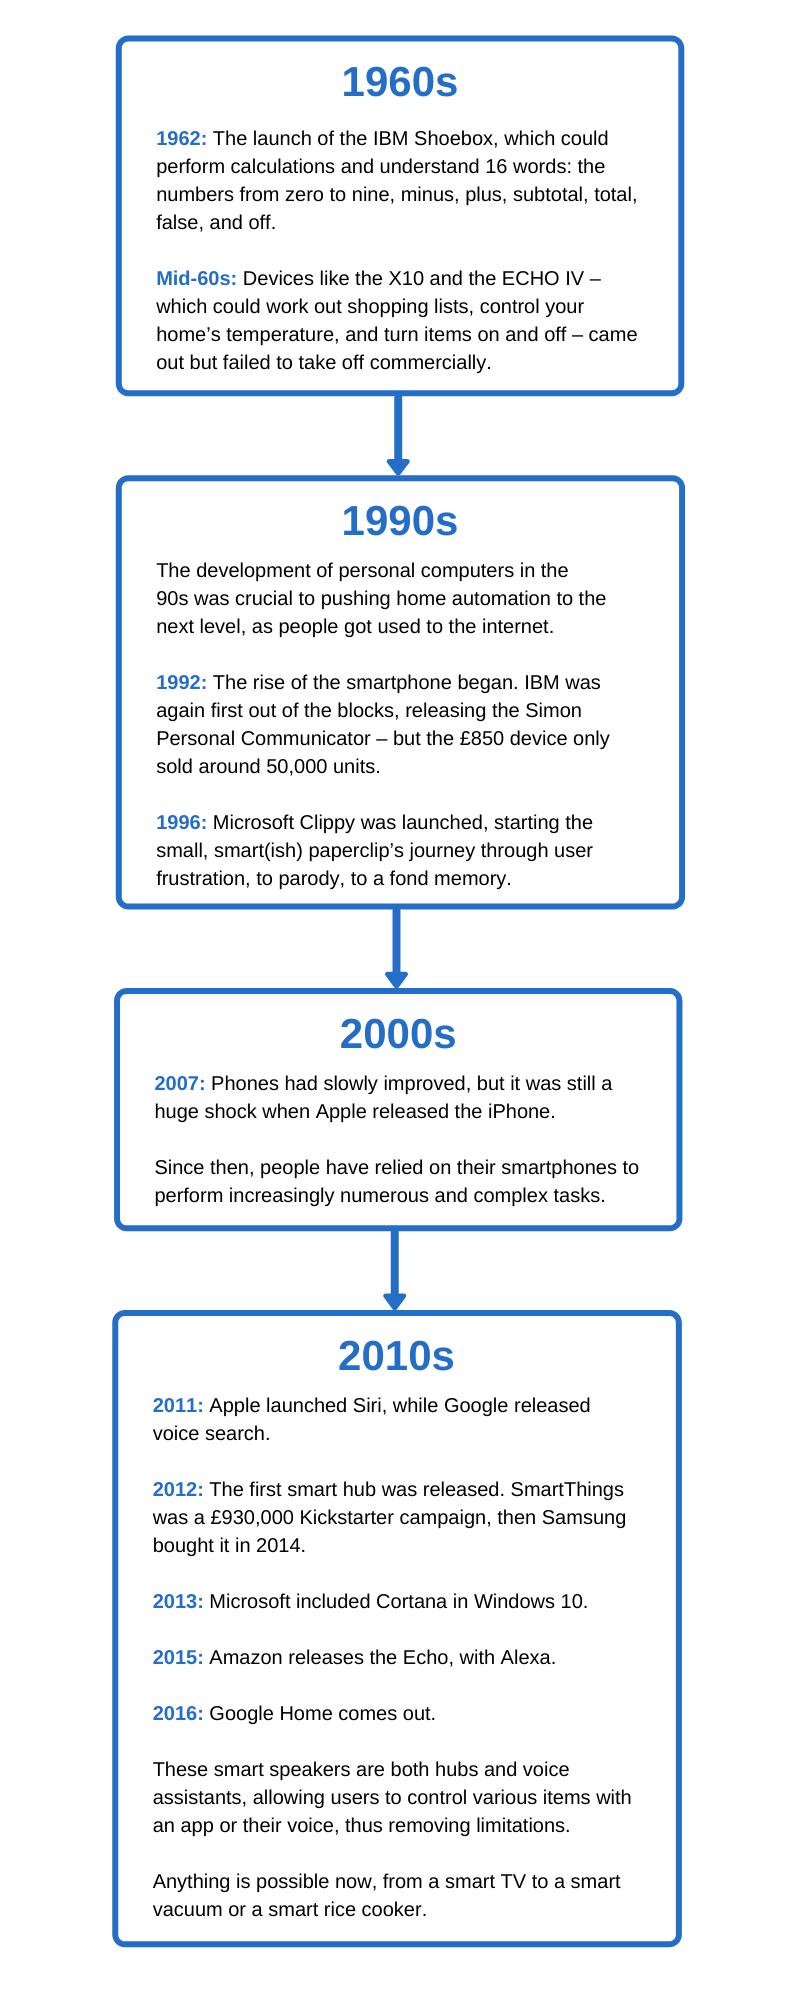 a timeline showing the history of smart homes